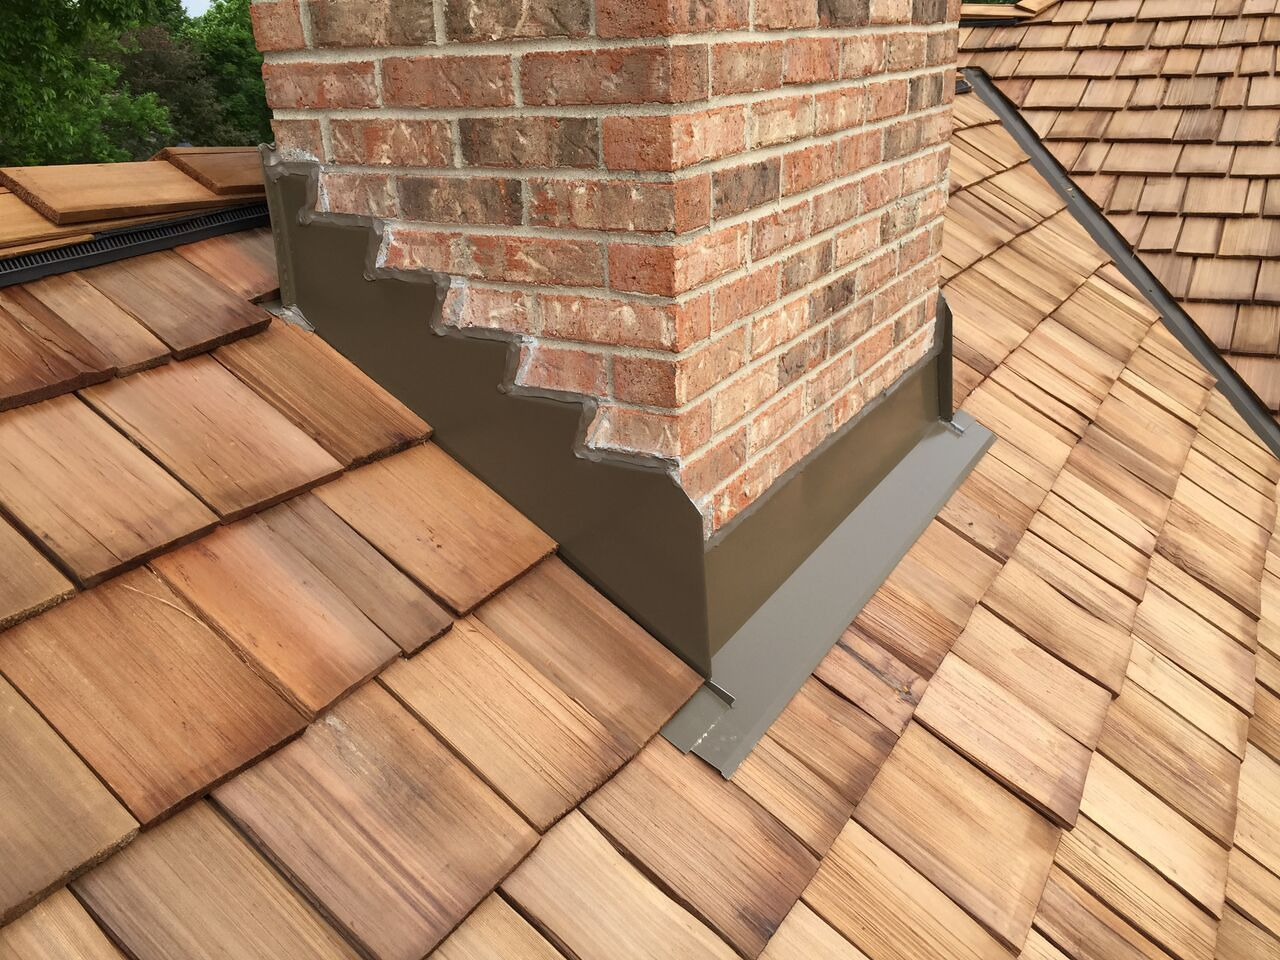 Cedar Roofing Installation Roof Replacement Cost Cedar Roof Ranch Style Homes